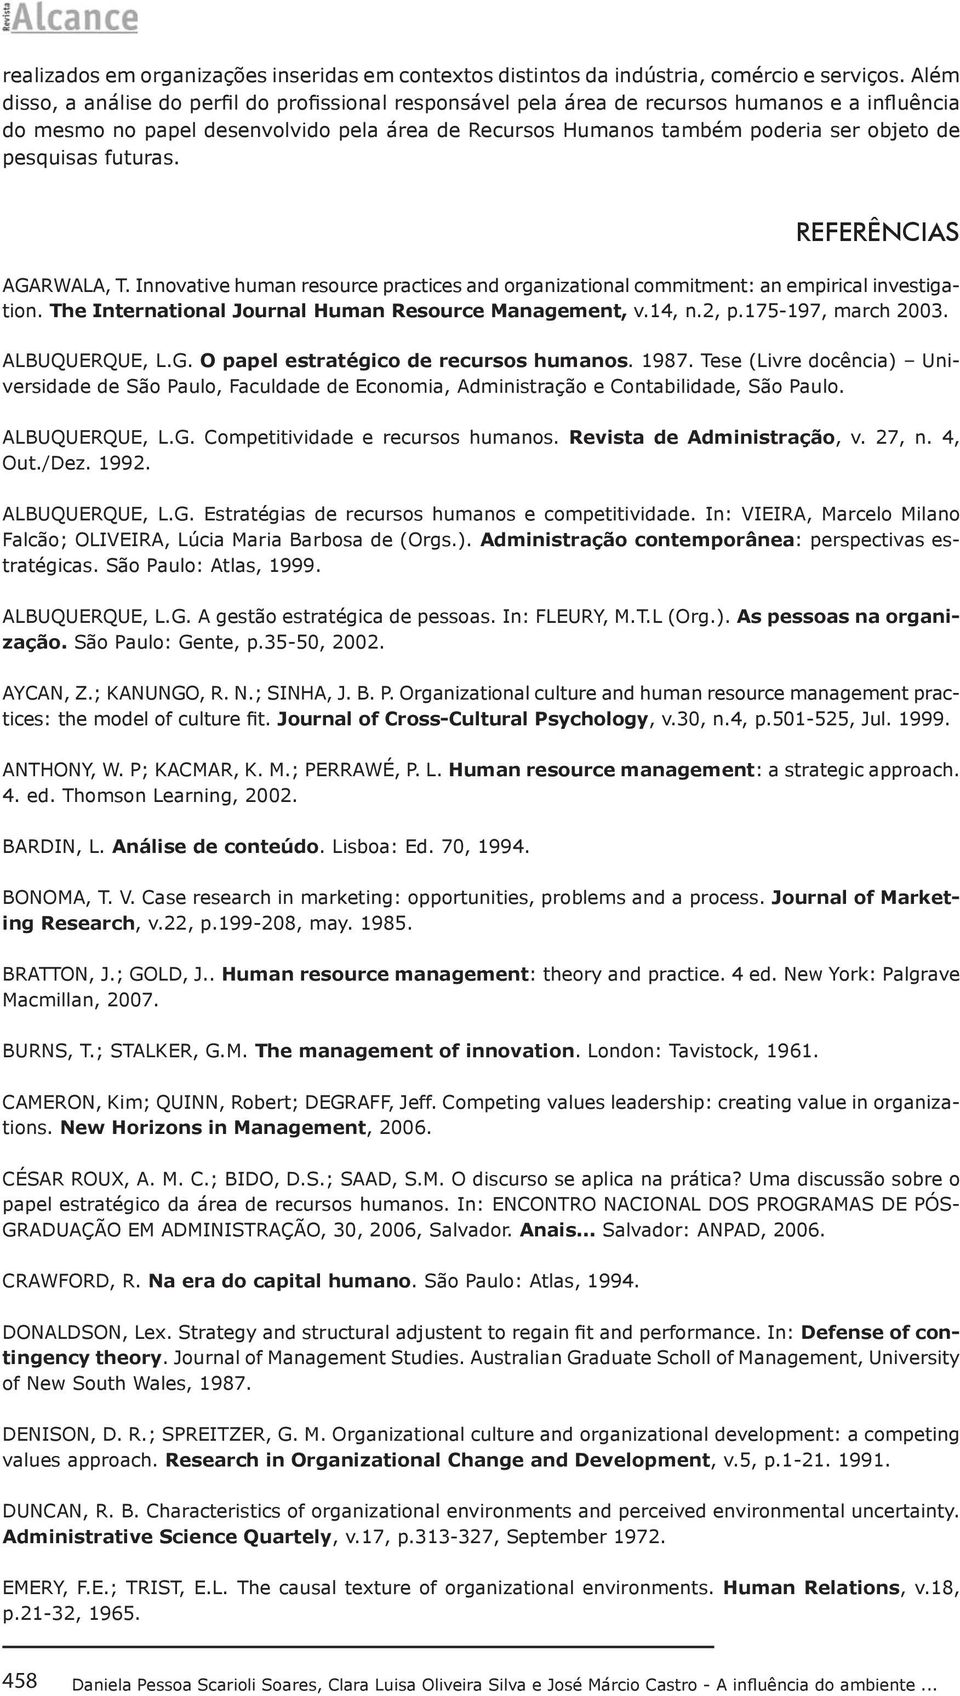 pesquisas futuras. REFERÊNCIAS AGARWALA, T. Innovative human resource practices and organizational commitment: an empirical investigation. The International Journal Human Resource Management, v.14, n.